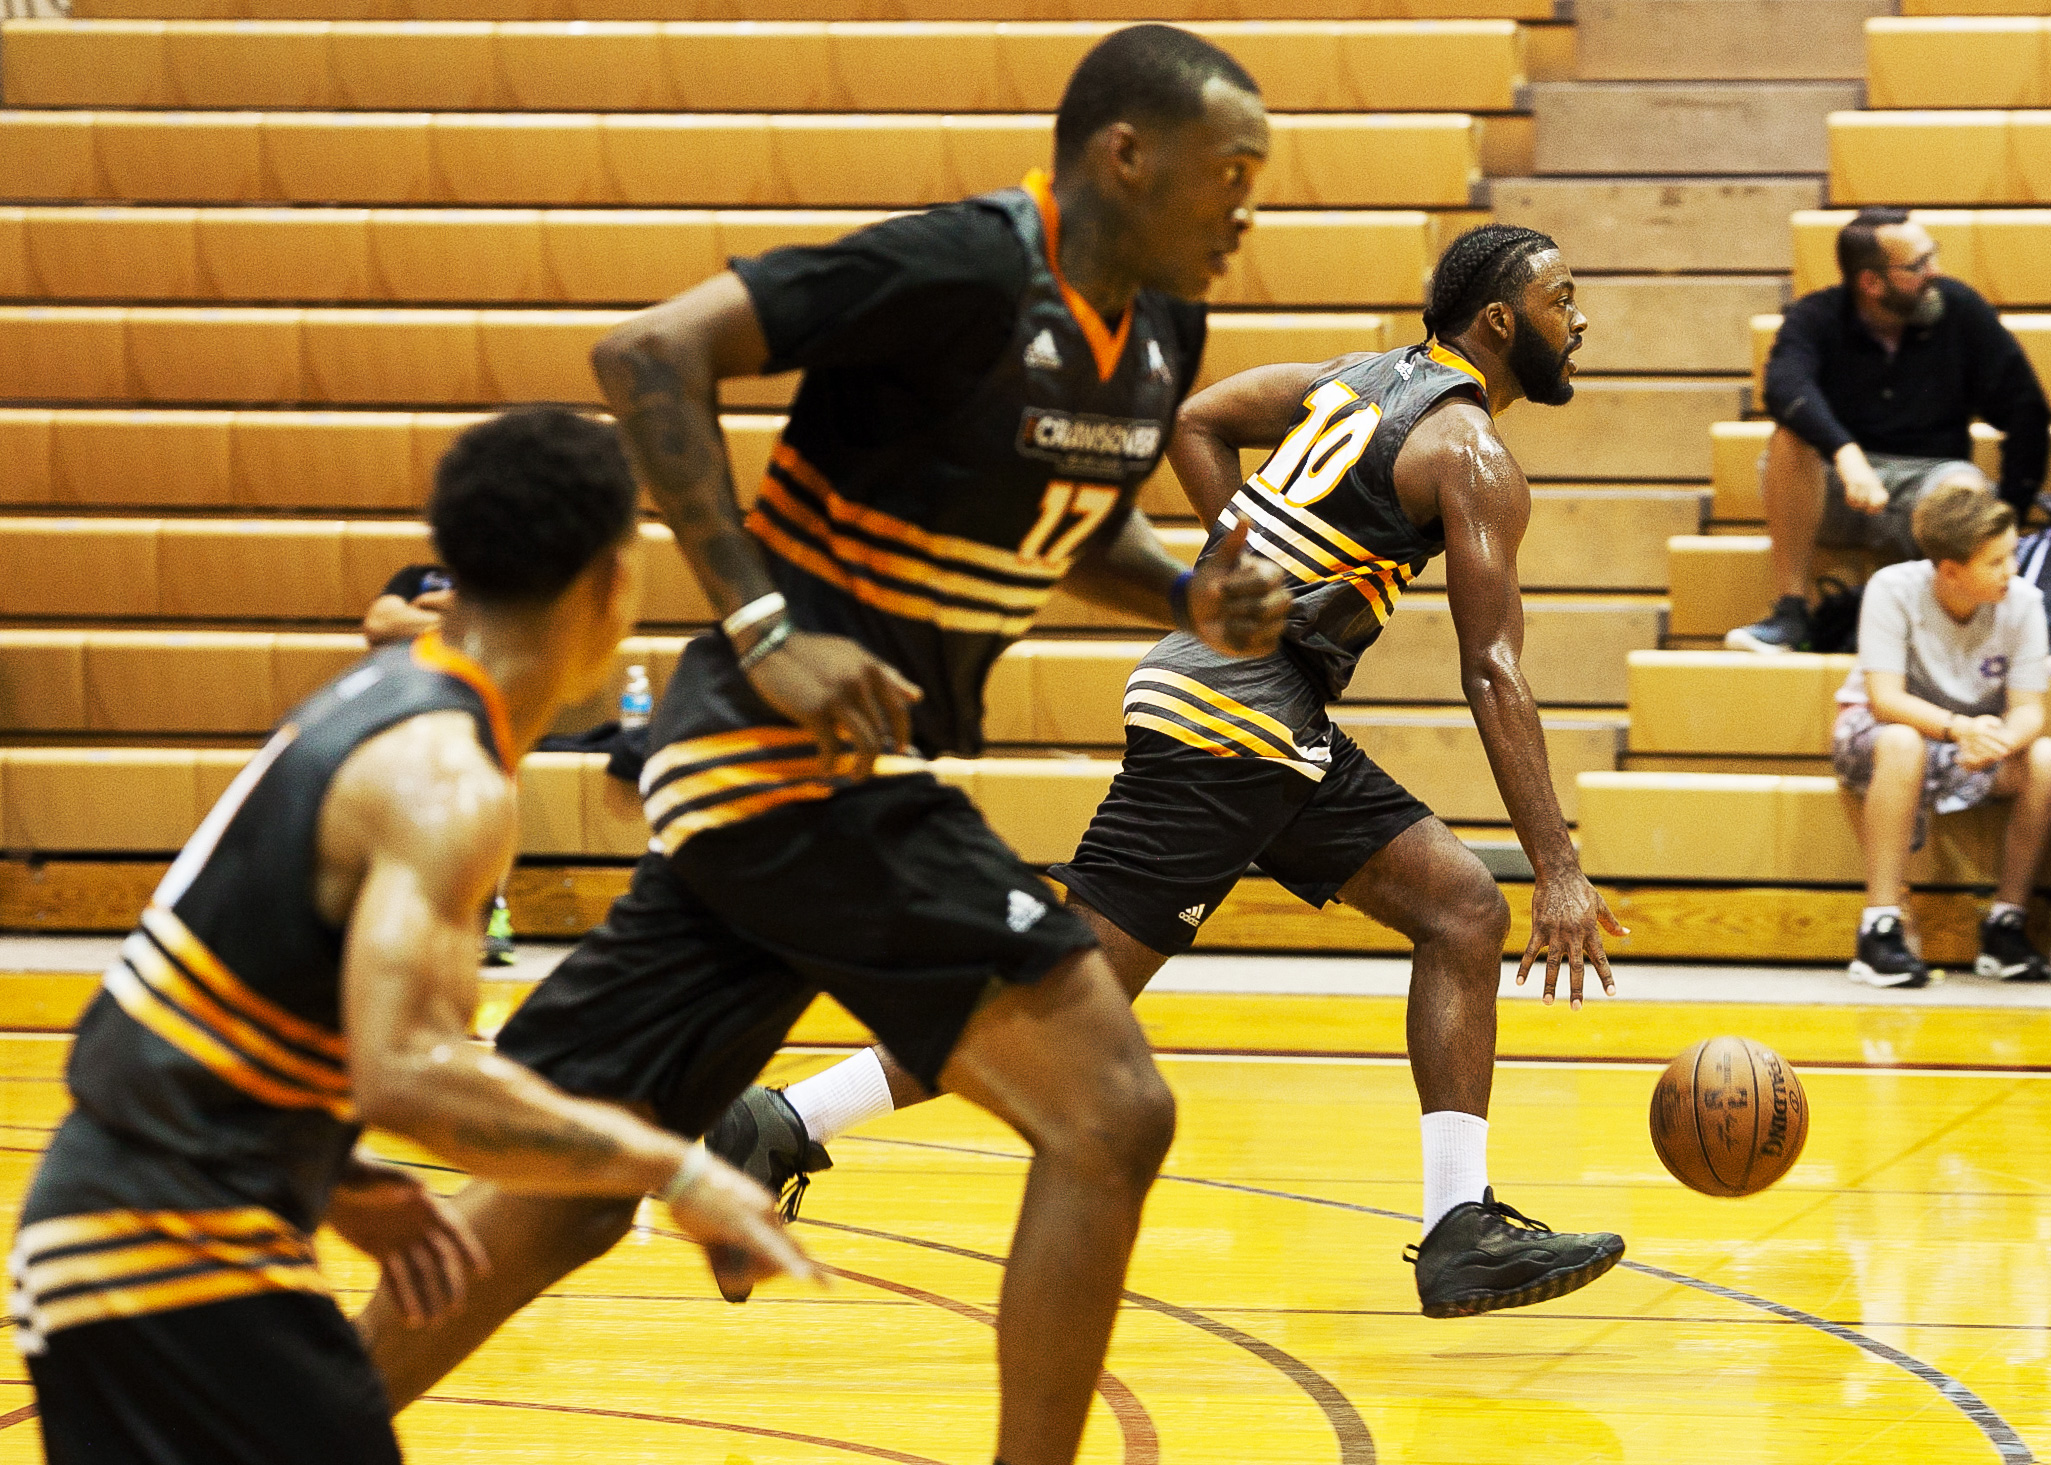 960bc356 Rakim Brown (right), of WorldwideSM, dribbles down the court during his  team's Crawsover league pro-am game against Ball is Life at Royal Brougham  Pavilion ...